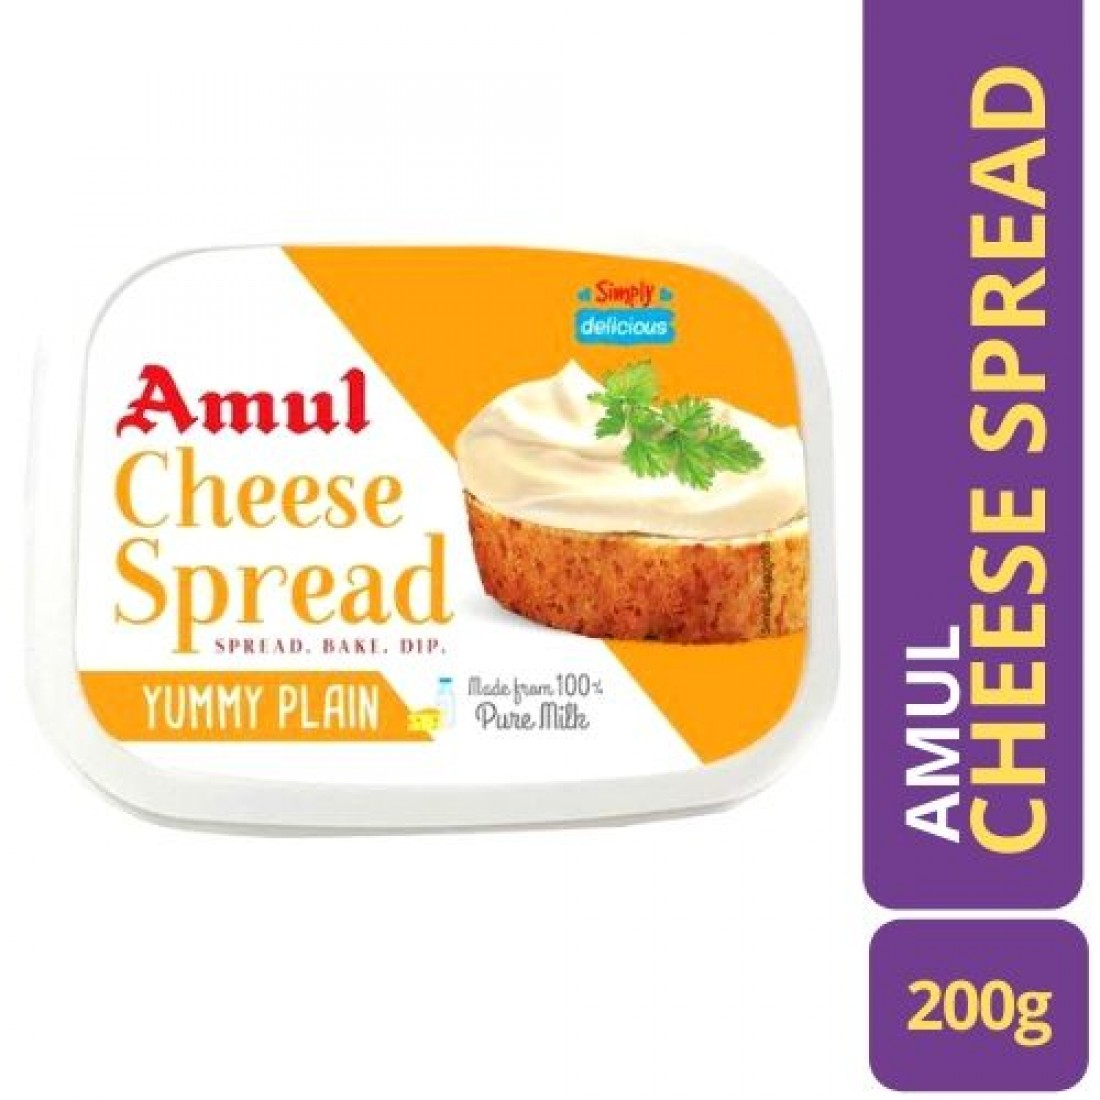 Amul Cheese Spread - Yummy Plain